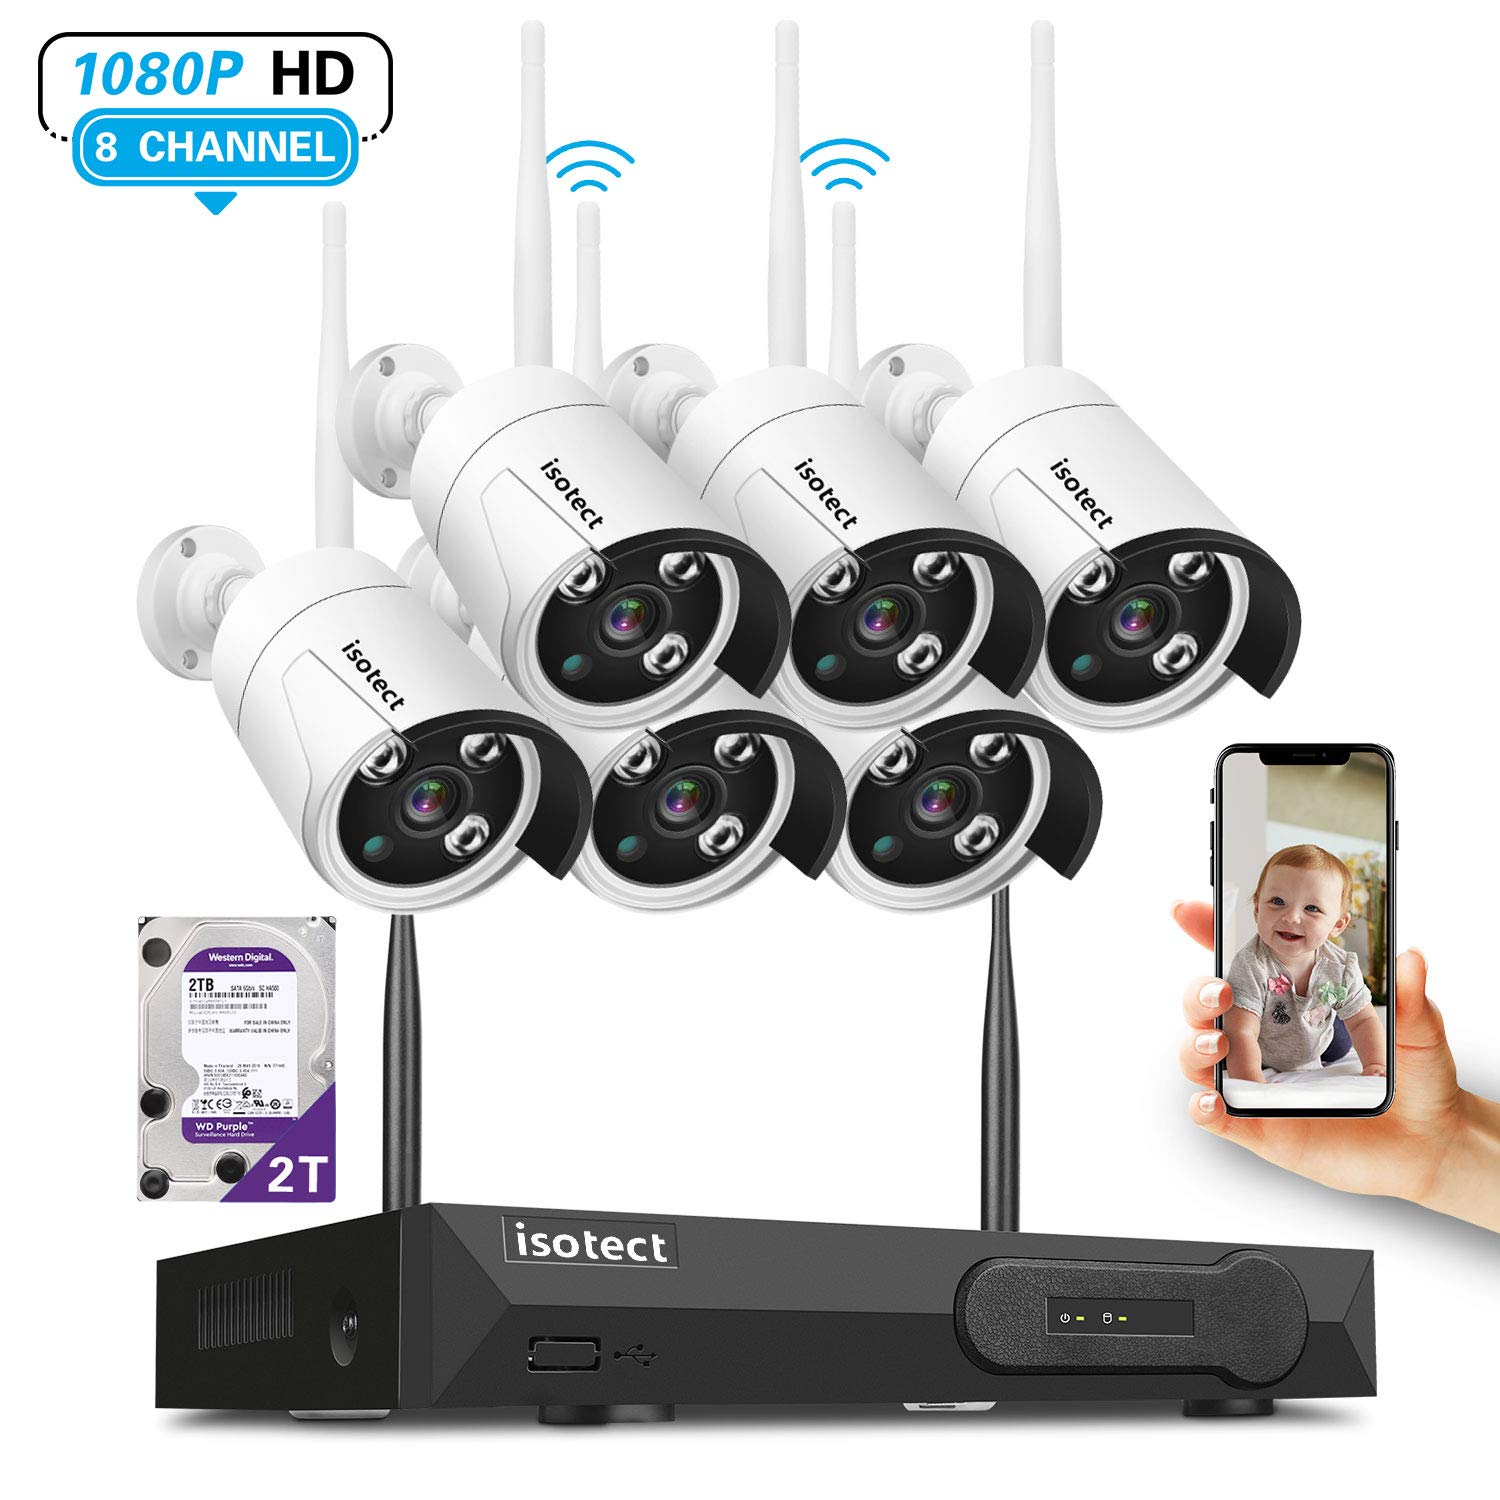 [Newest Strong Version WiFi] Wireless Security Camera System, ISOTECT 8CH Full HD 1080P Video Security System, 6pcs Outdoor/Indoor IP Security Cameras, 65ft Night Vision and Easy Remote View, 2TB HDD by isotect